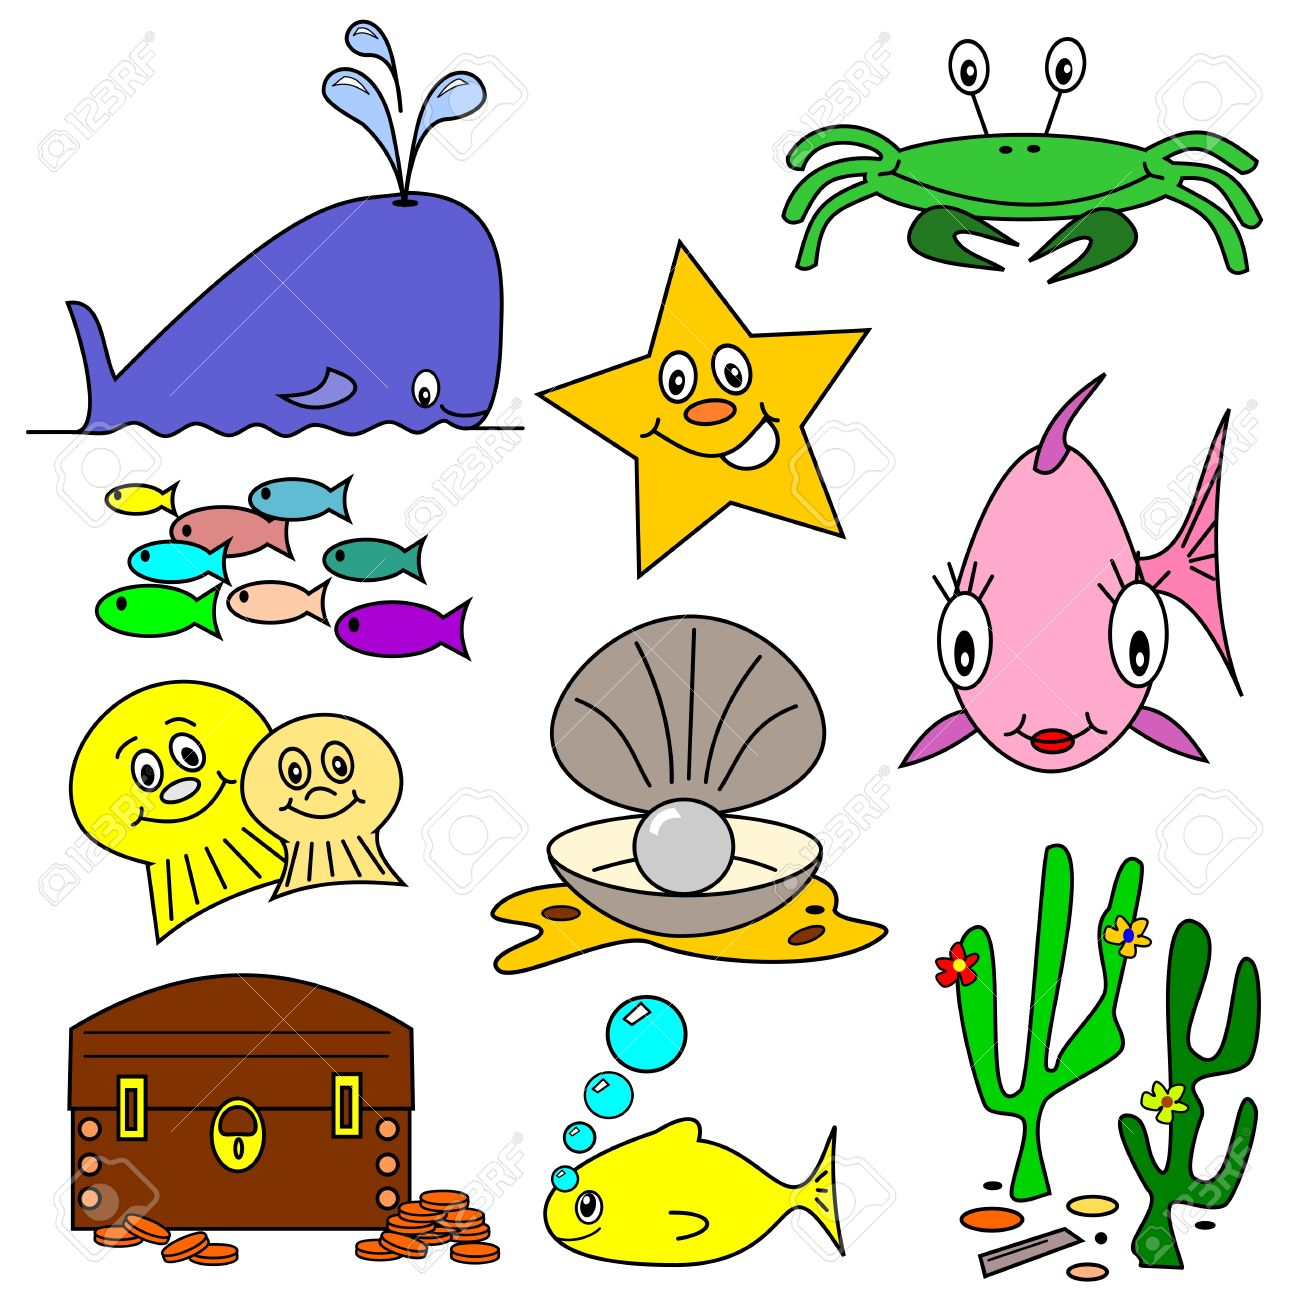 Selection Of Sea Life Clip Art Cartoons On A White Background.